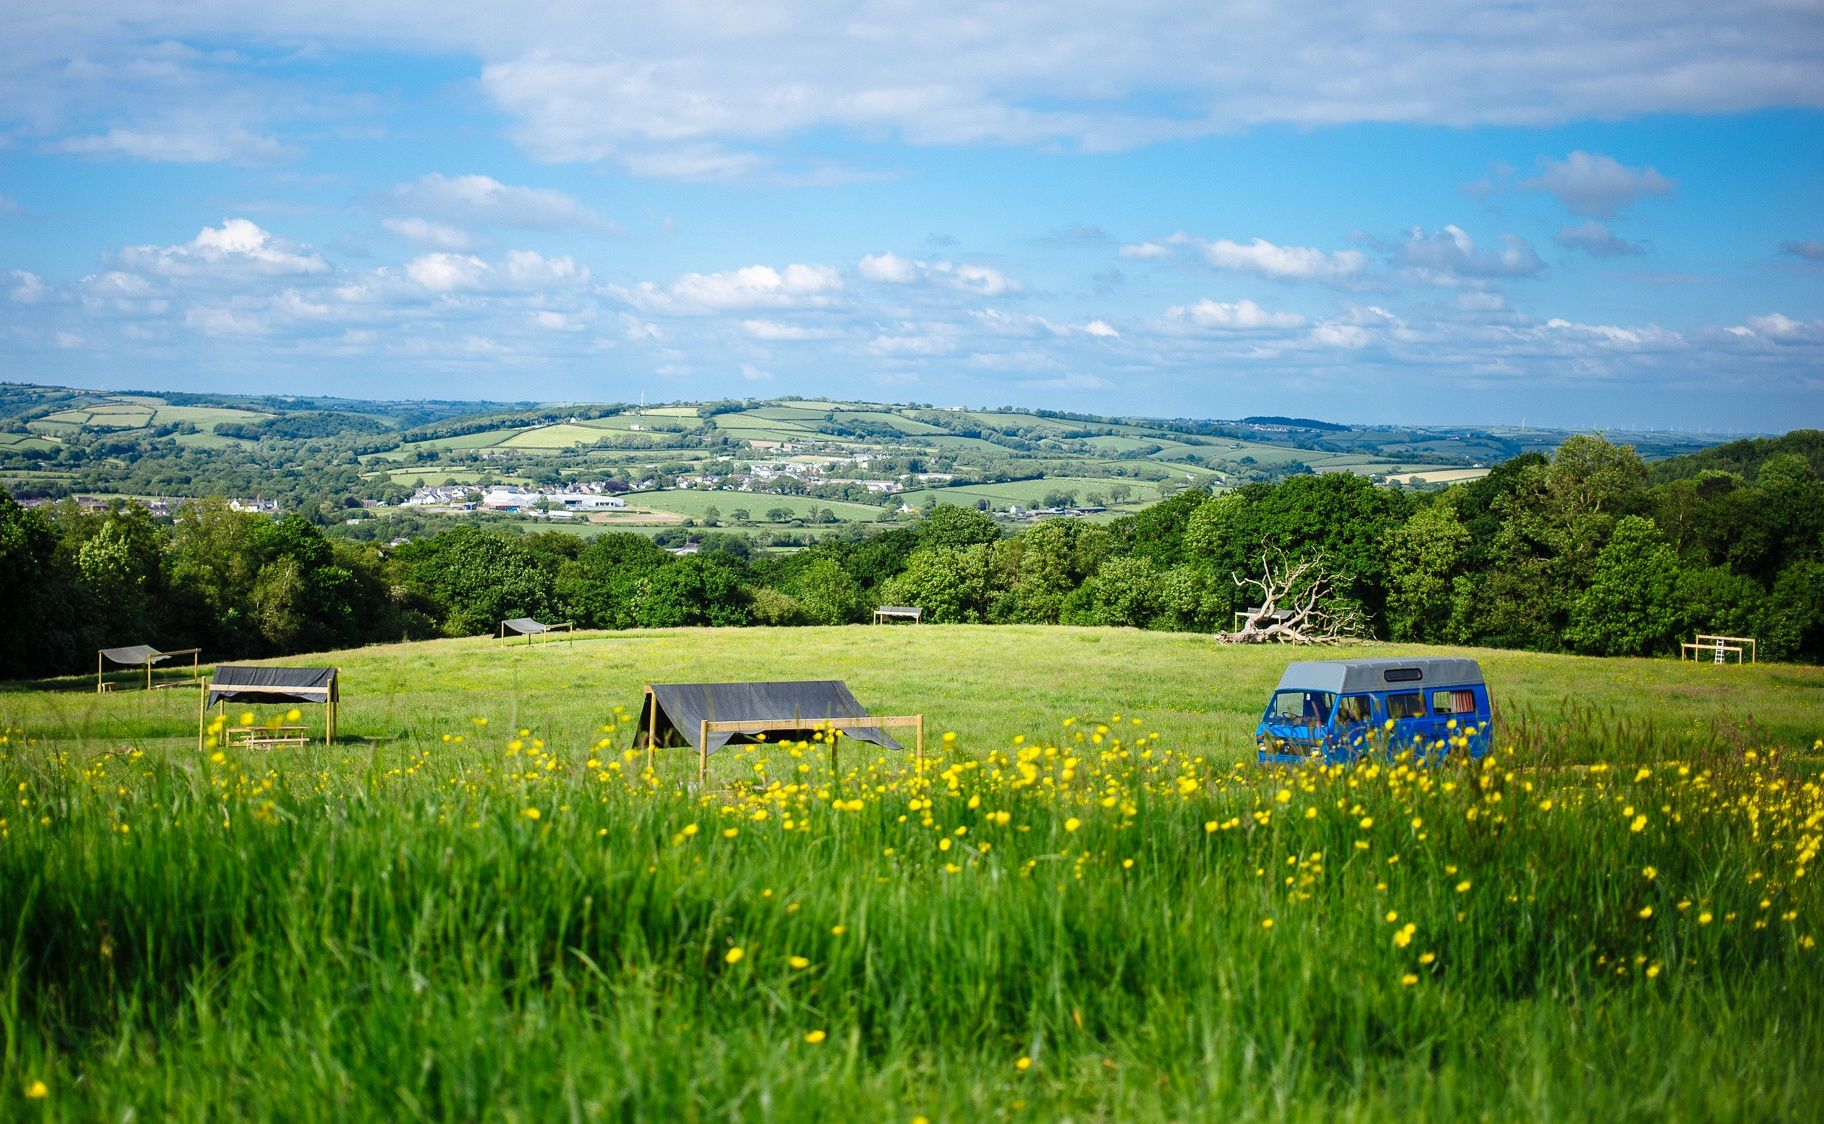 Camping Sites Near Beaches In Pembrokeshire